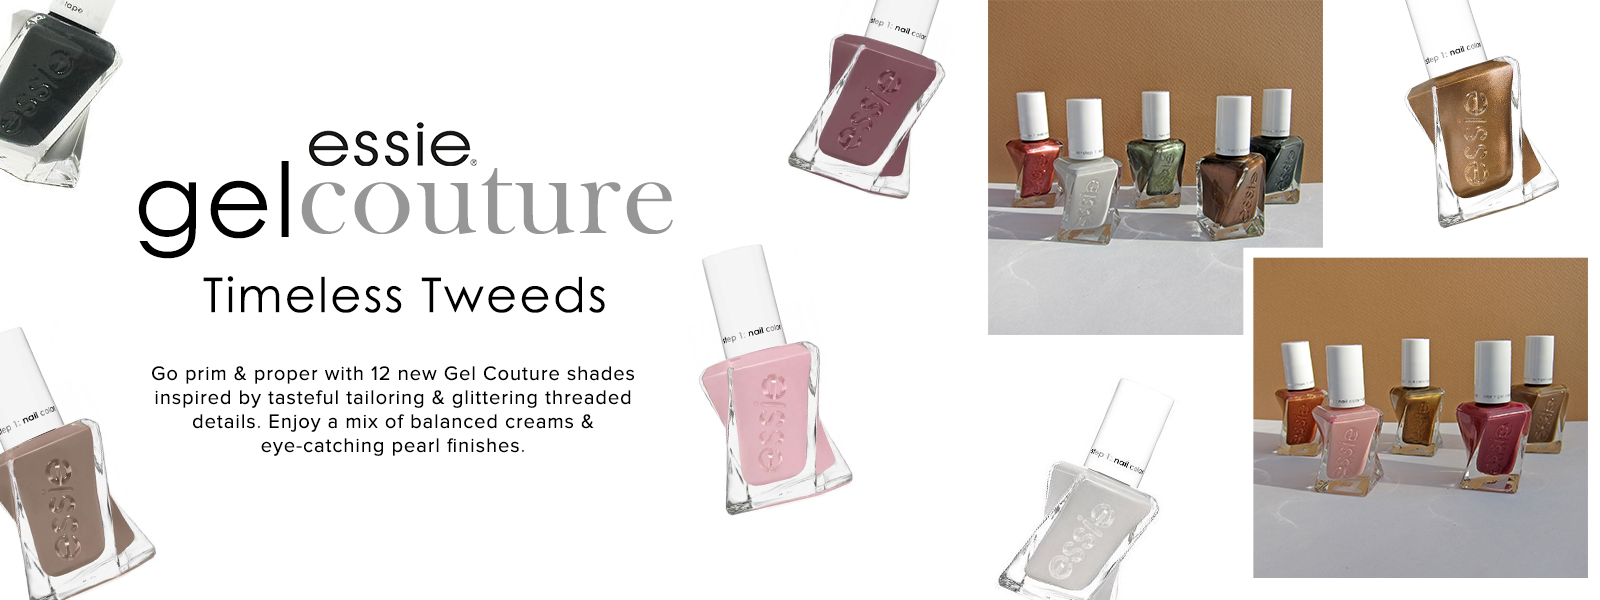 Essie Gel Couture Timeless Tweeds